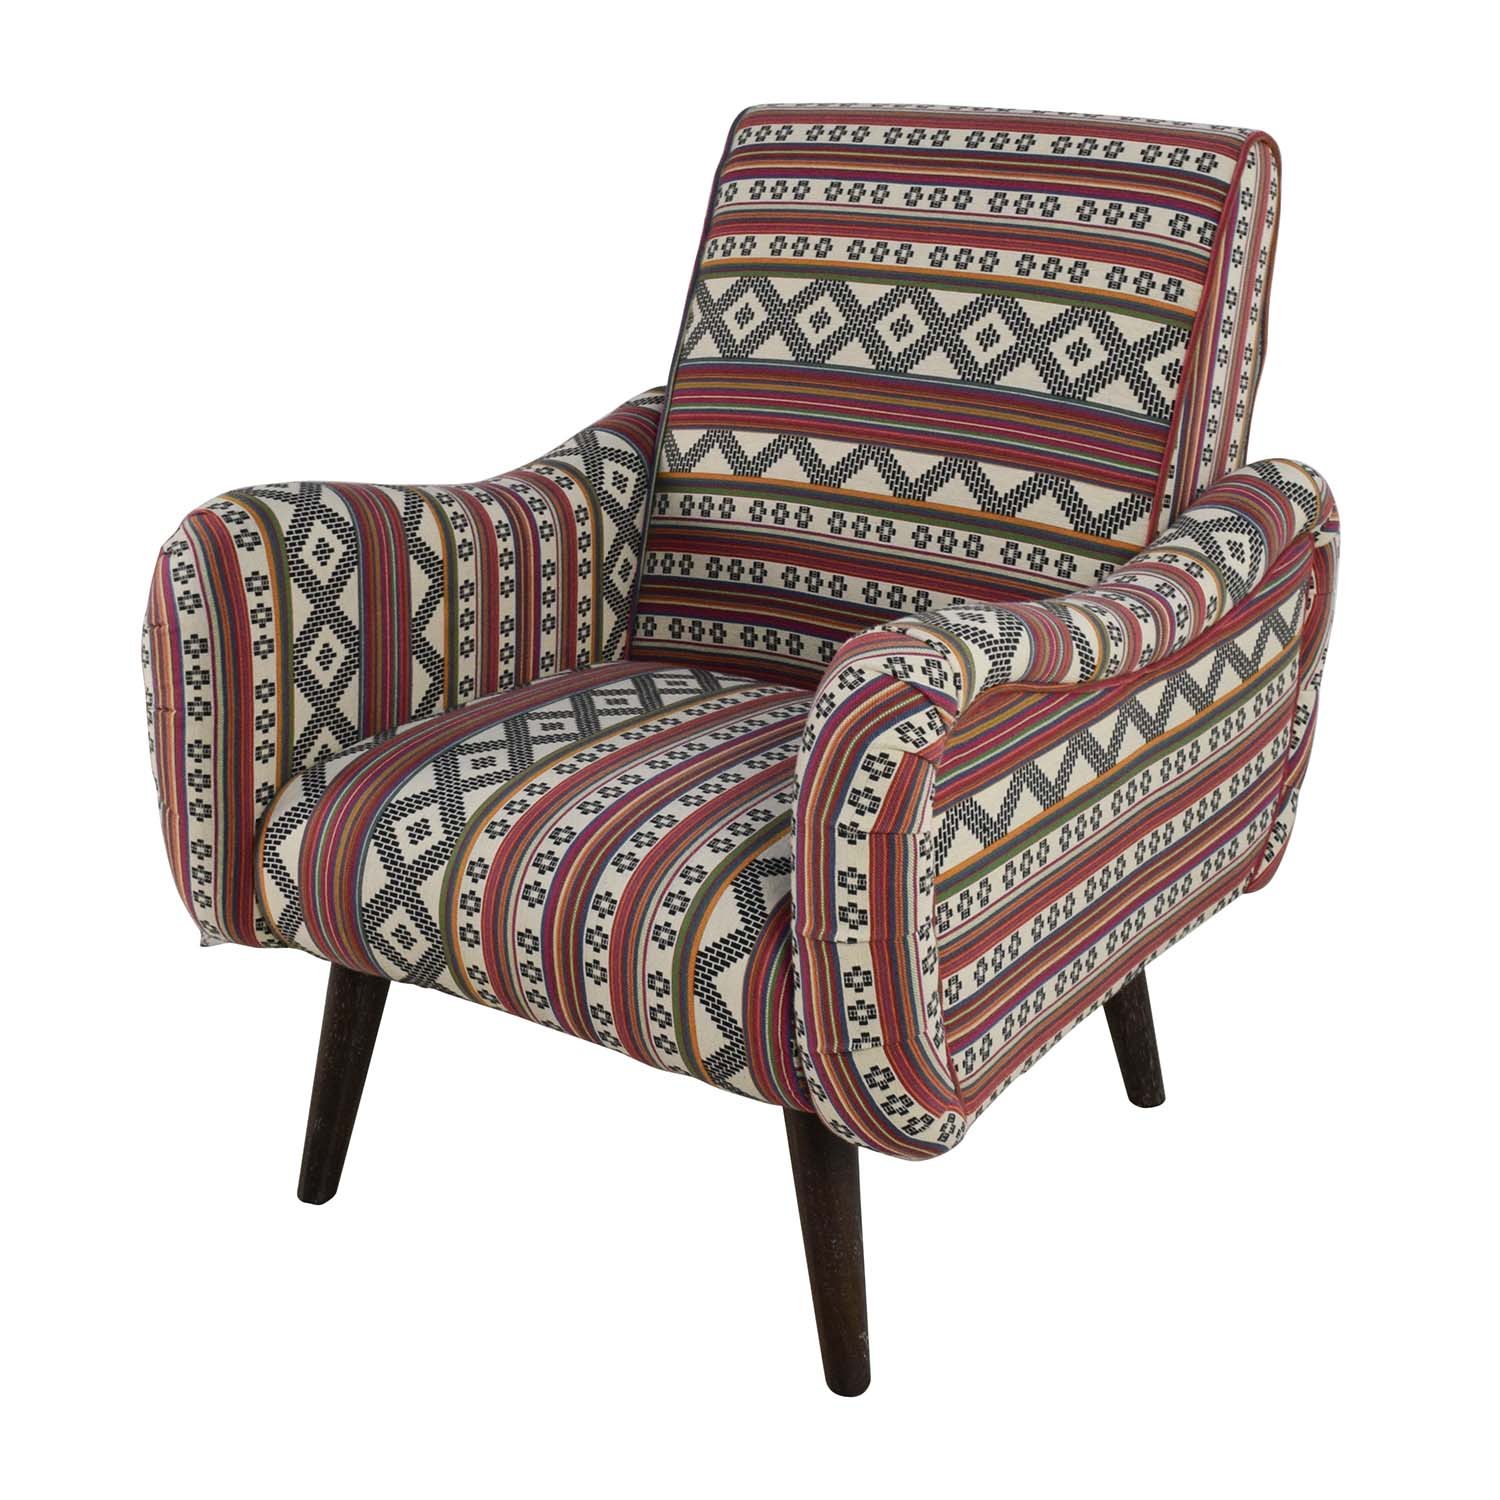 75% OFF Aztec Pattern Accent Armchair Chairs